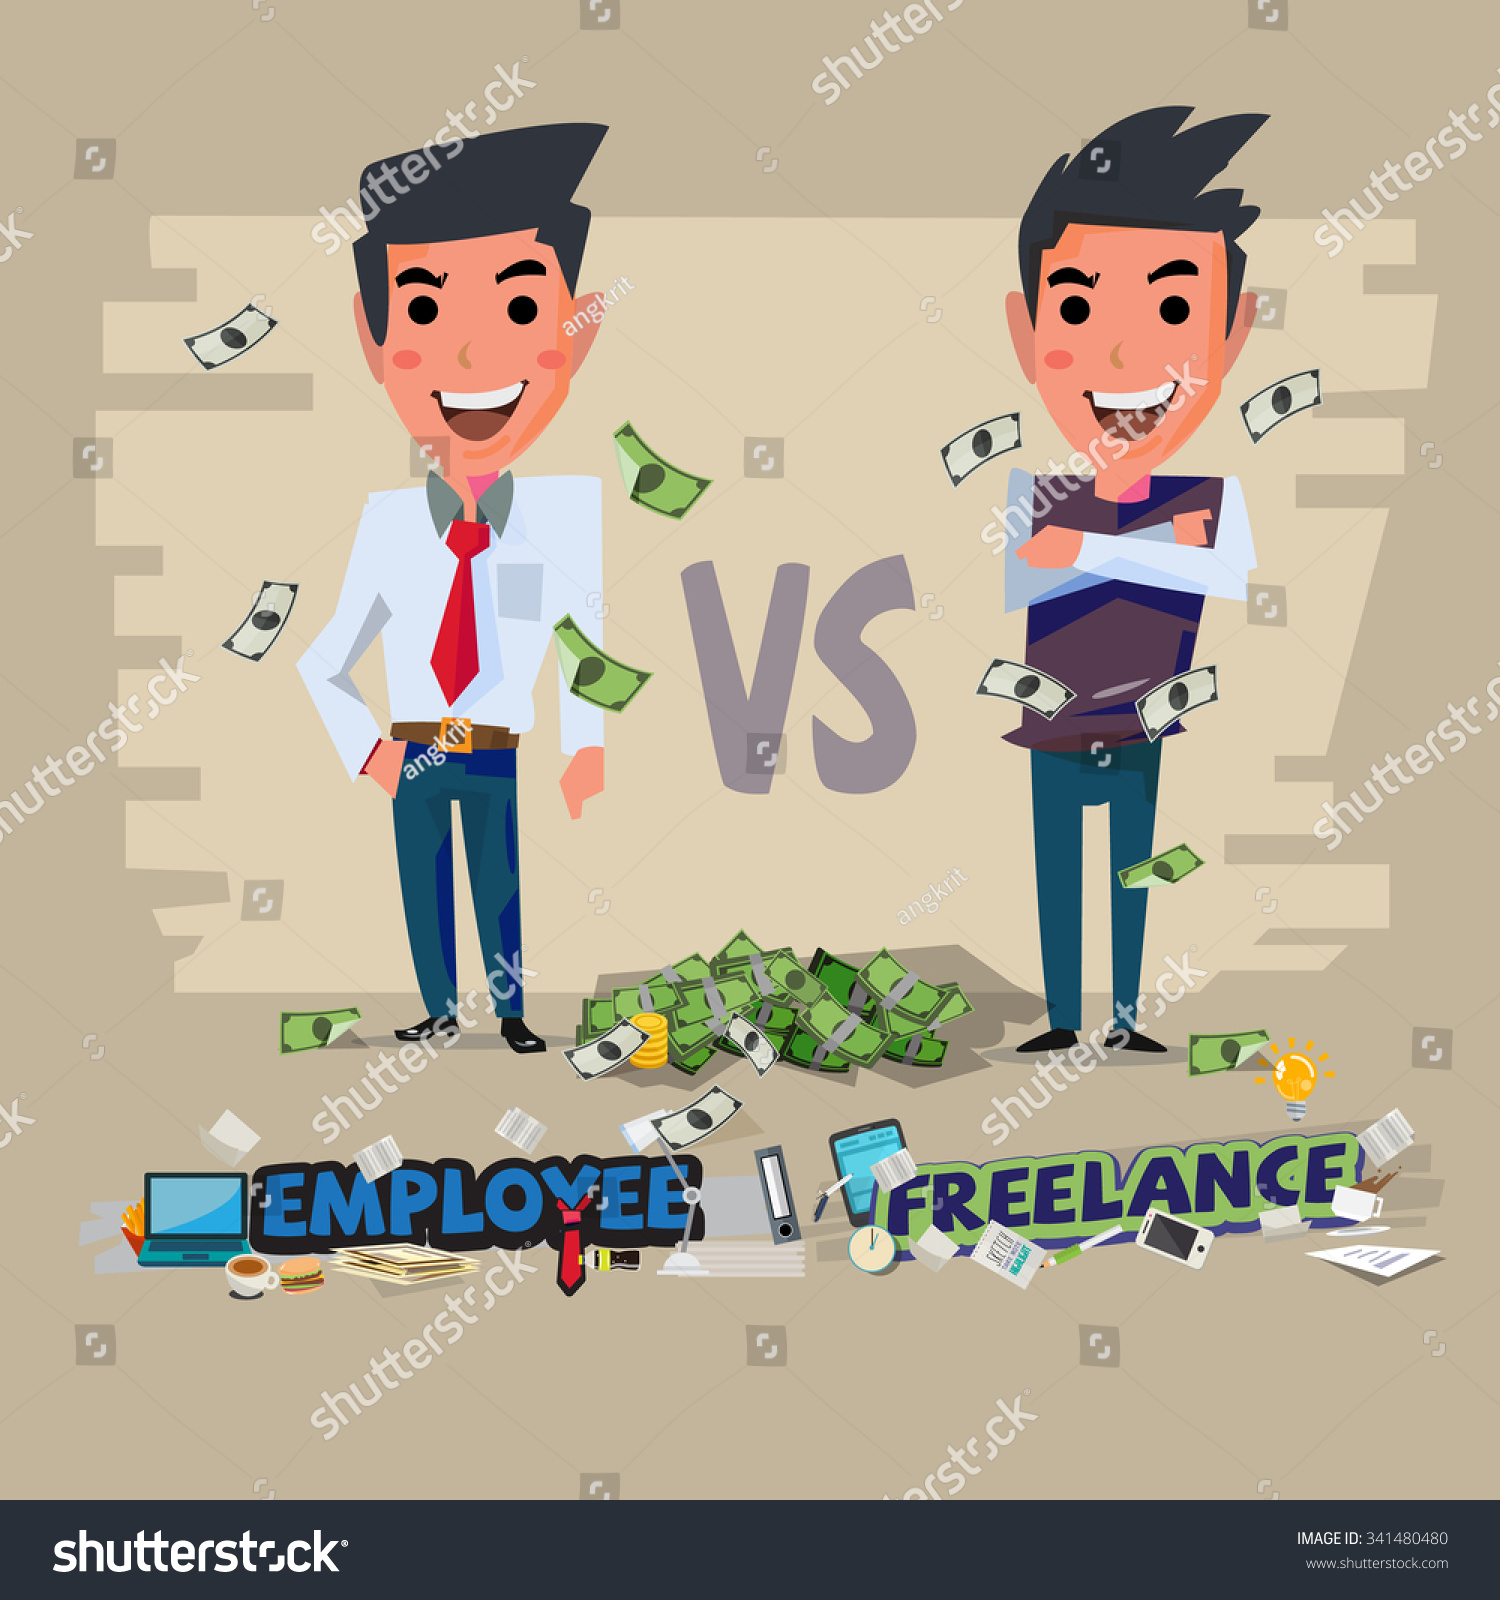 Employee freelance character design freelancing vs stock for Character designer job